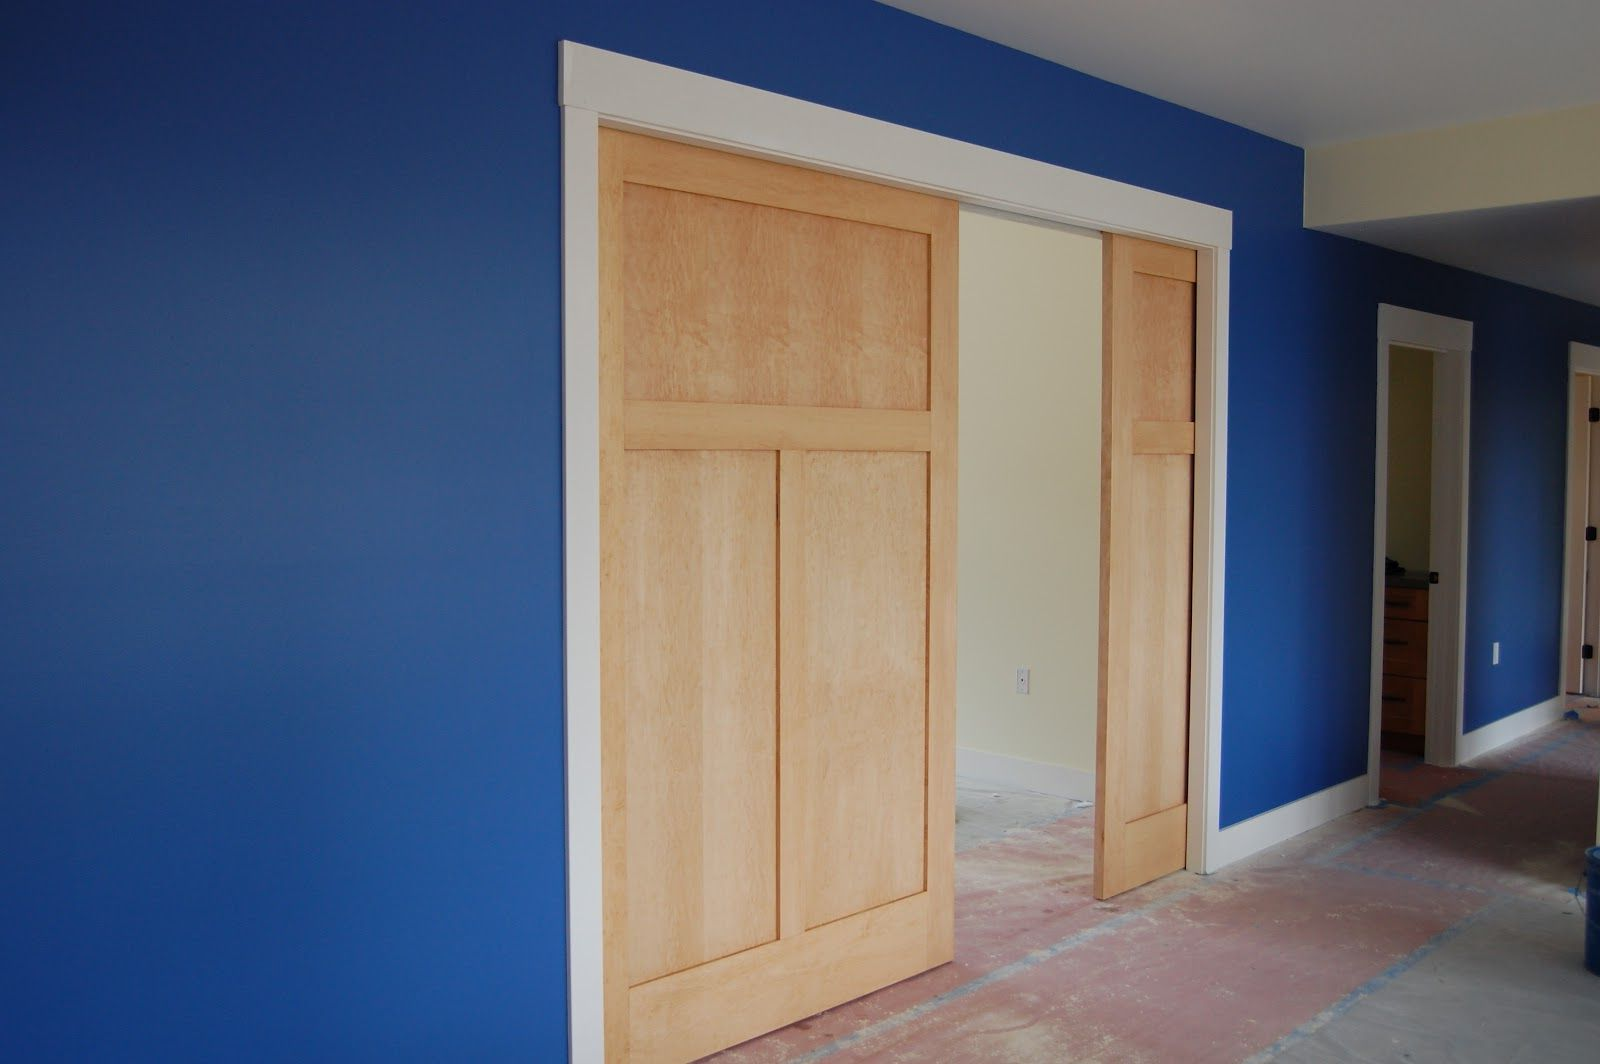 Large wooden pocket interior doors and blue walls in the room